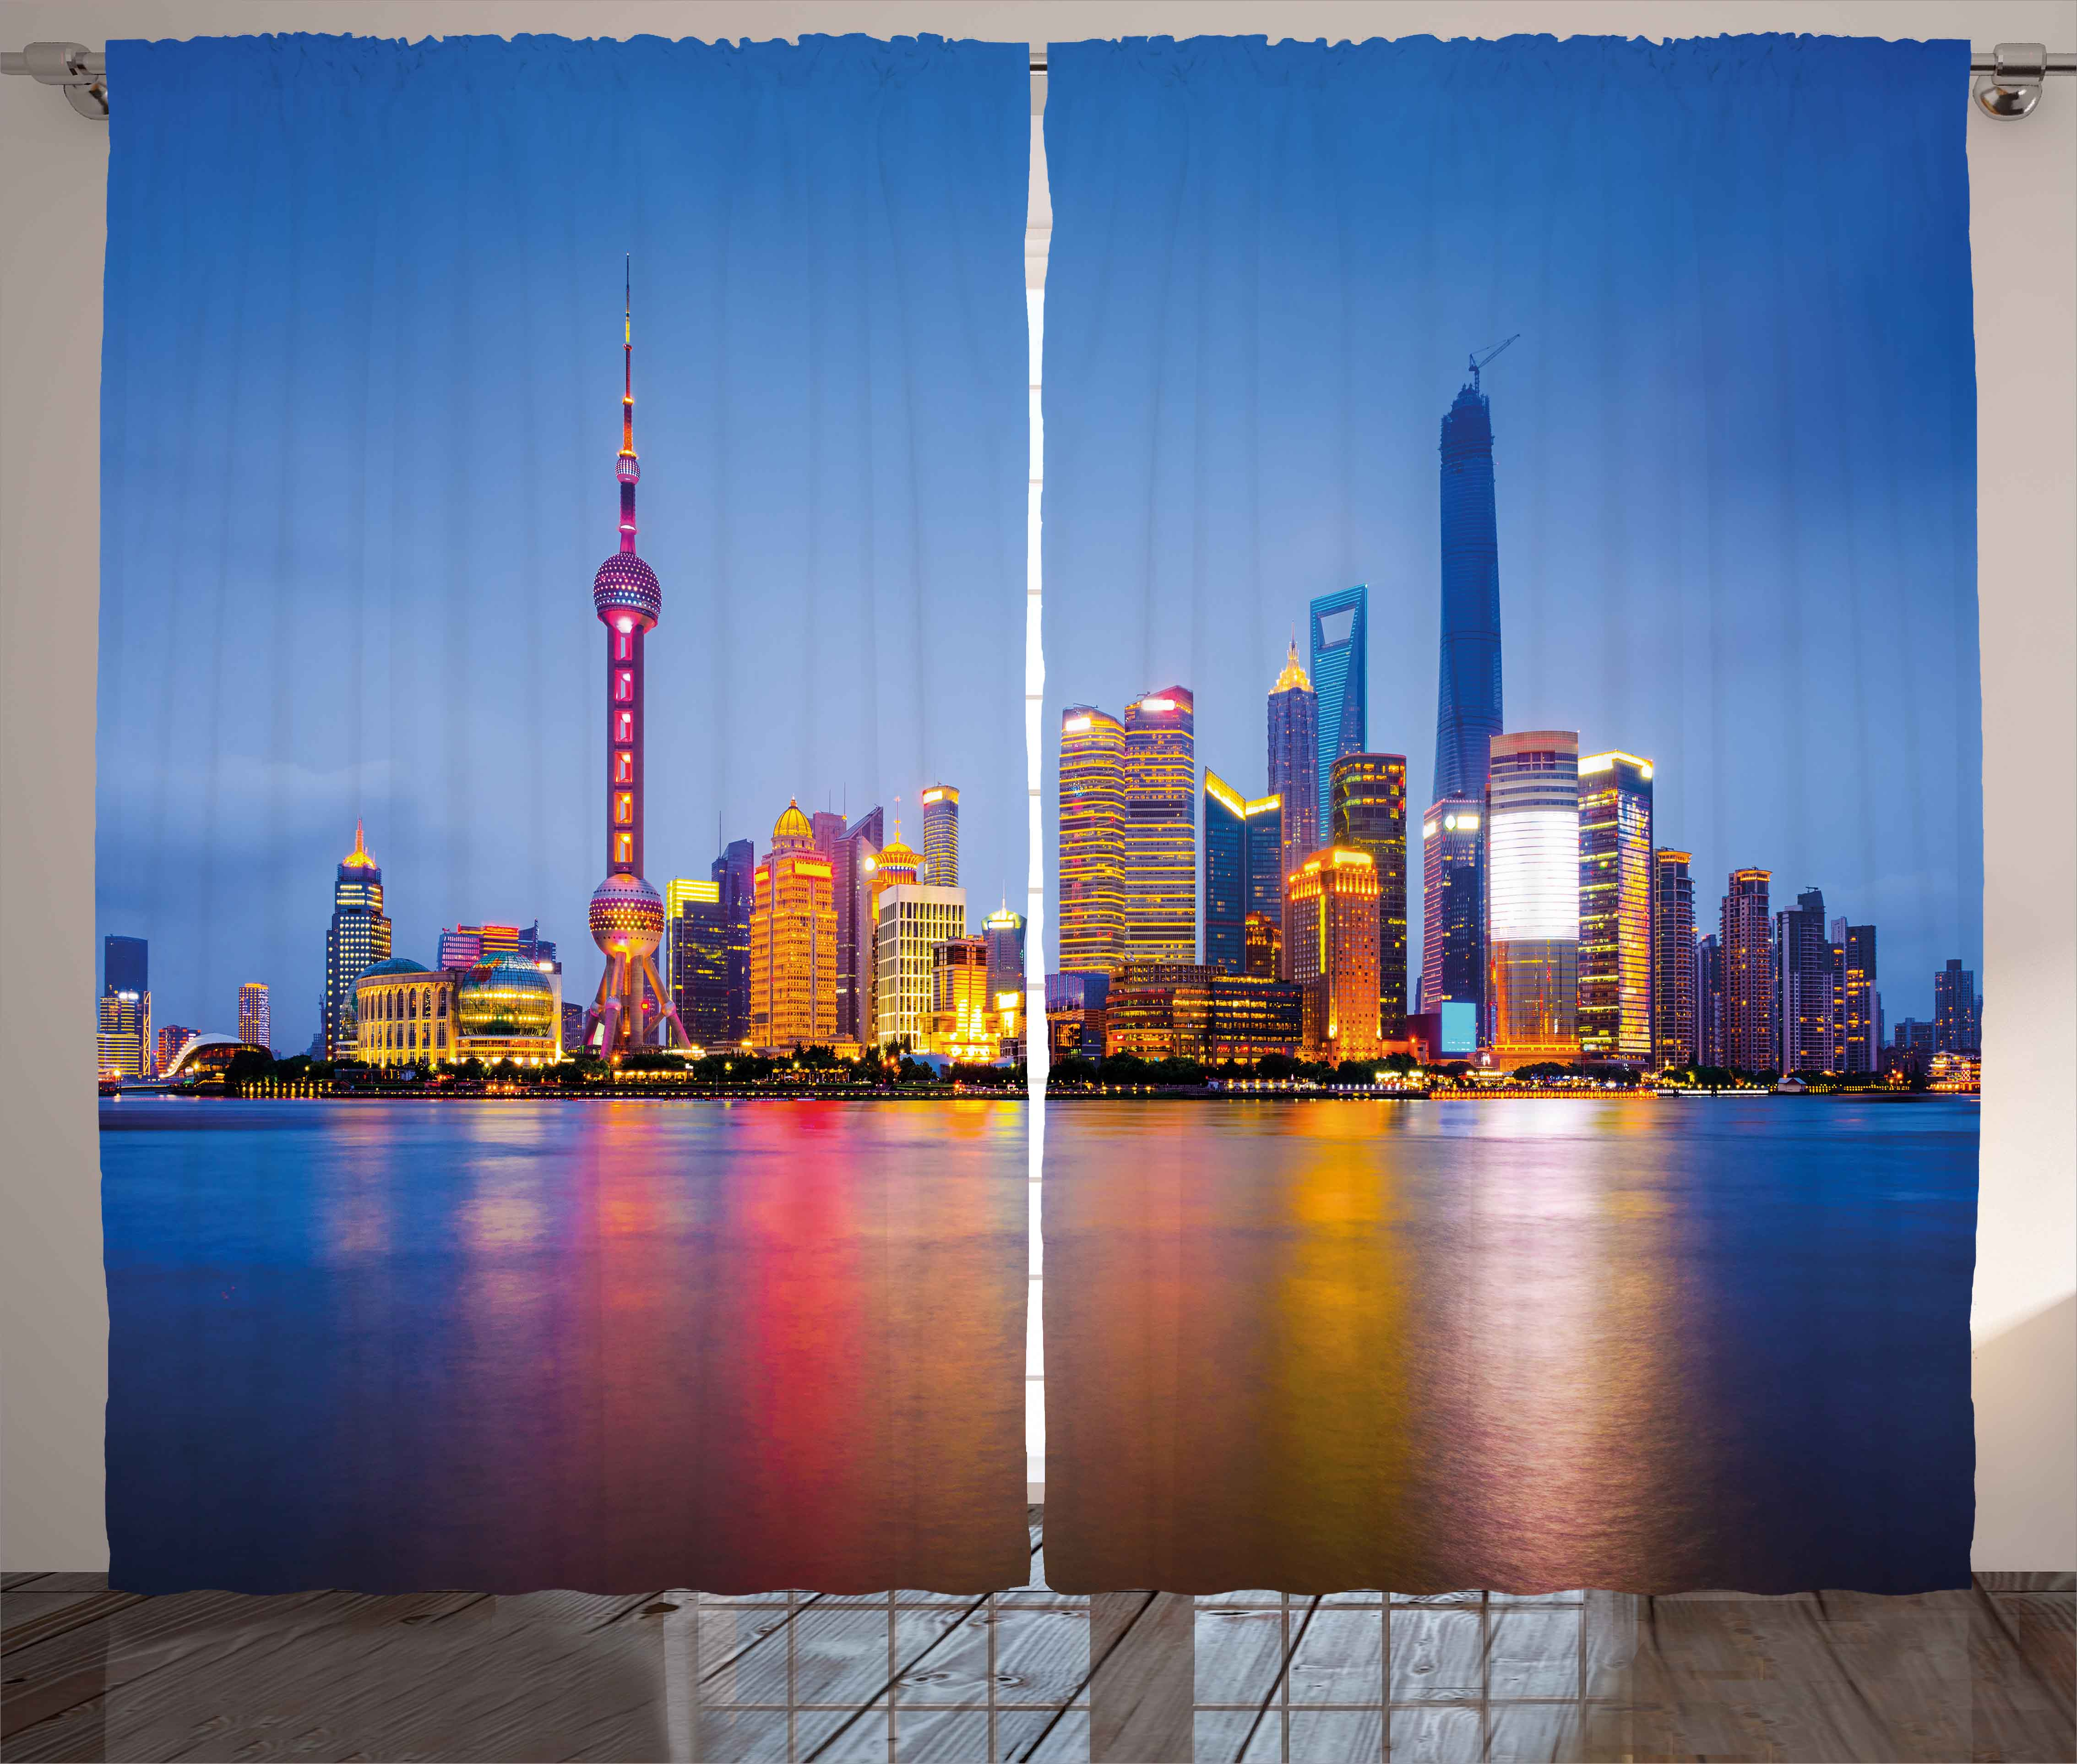 China Blue Curtains Urban Curtains 2 Panels Set City Skyline Of Shanghai China On Huangpu River Dusk Famous Travel Destination Window Drapes For Living Room Bedroom